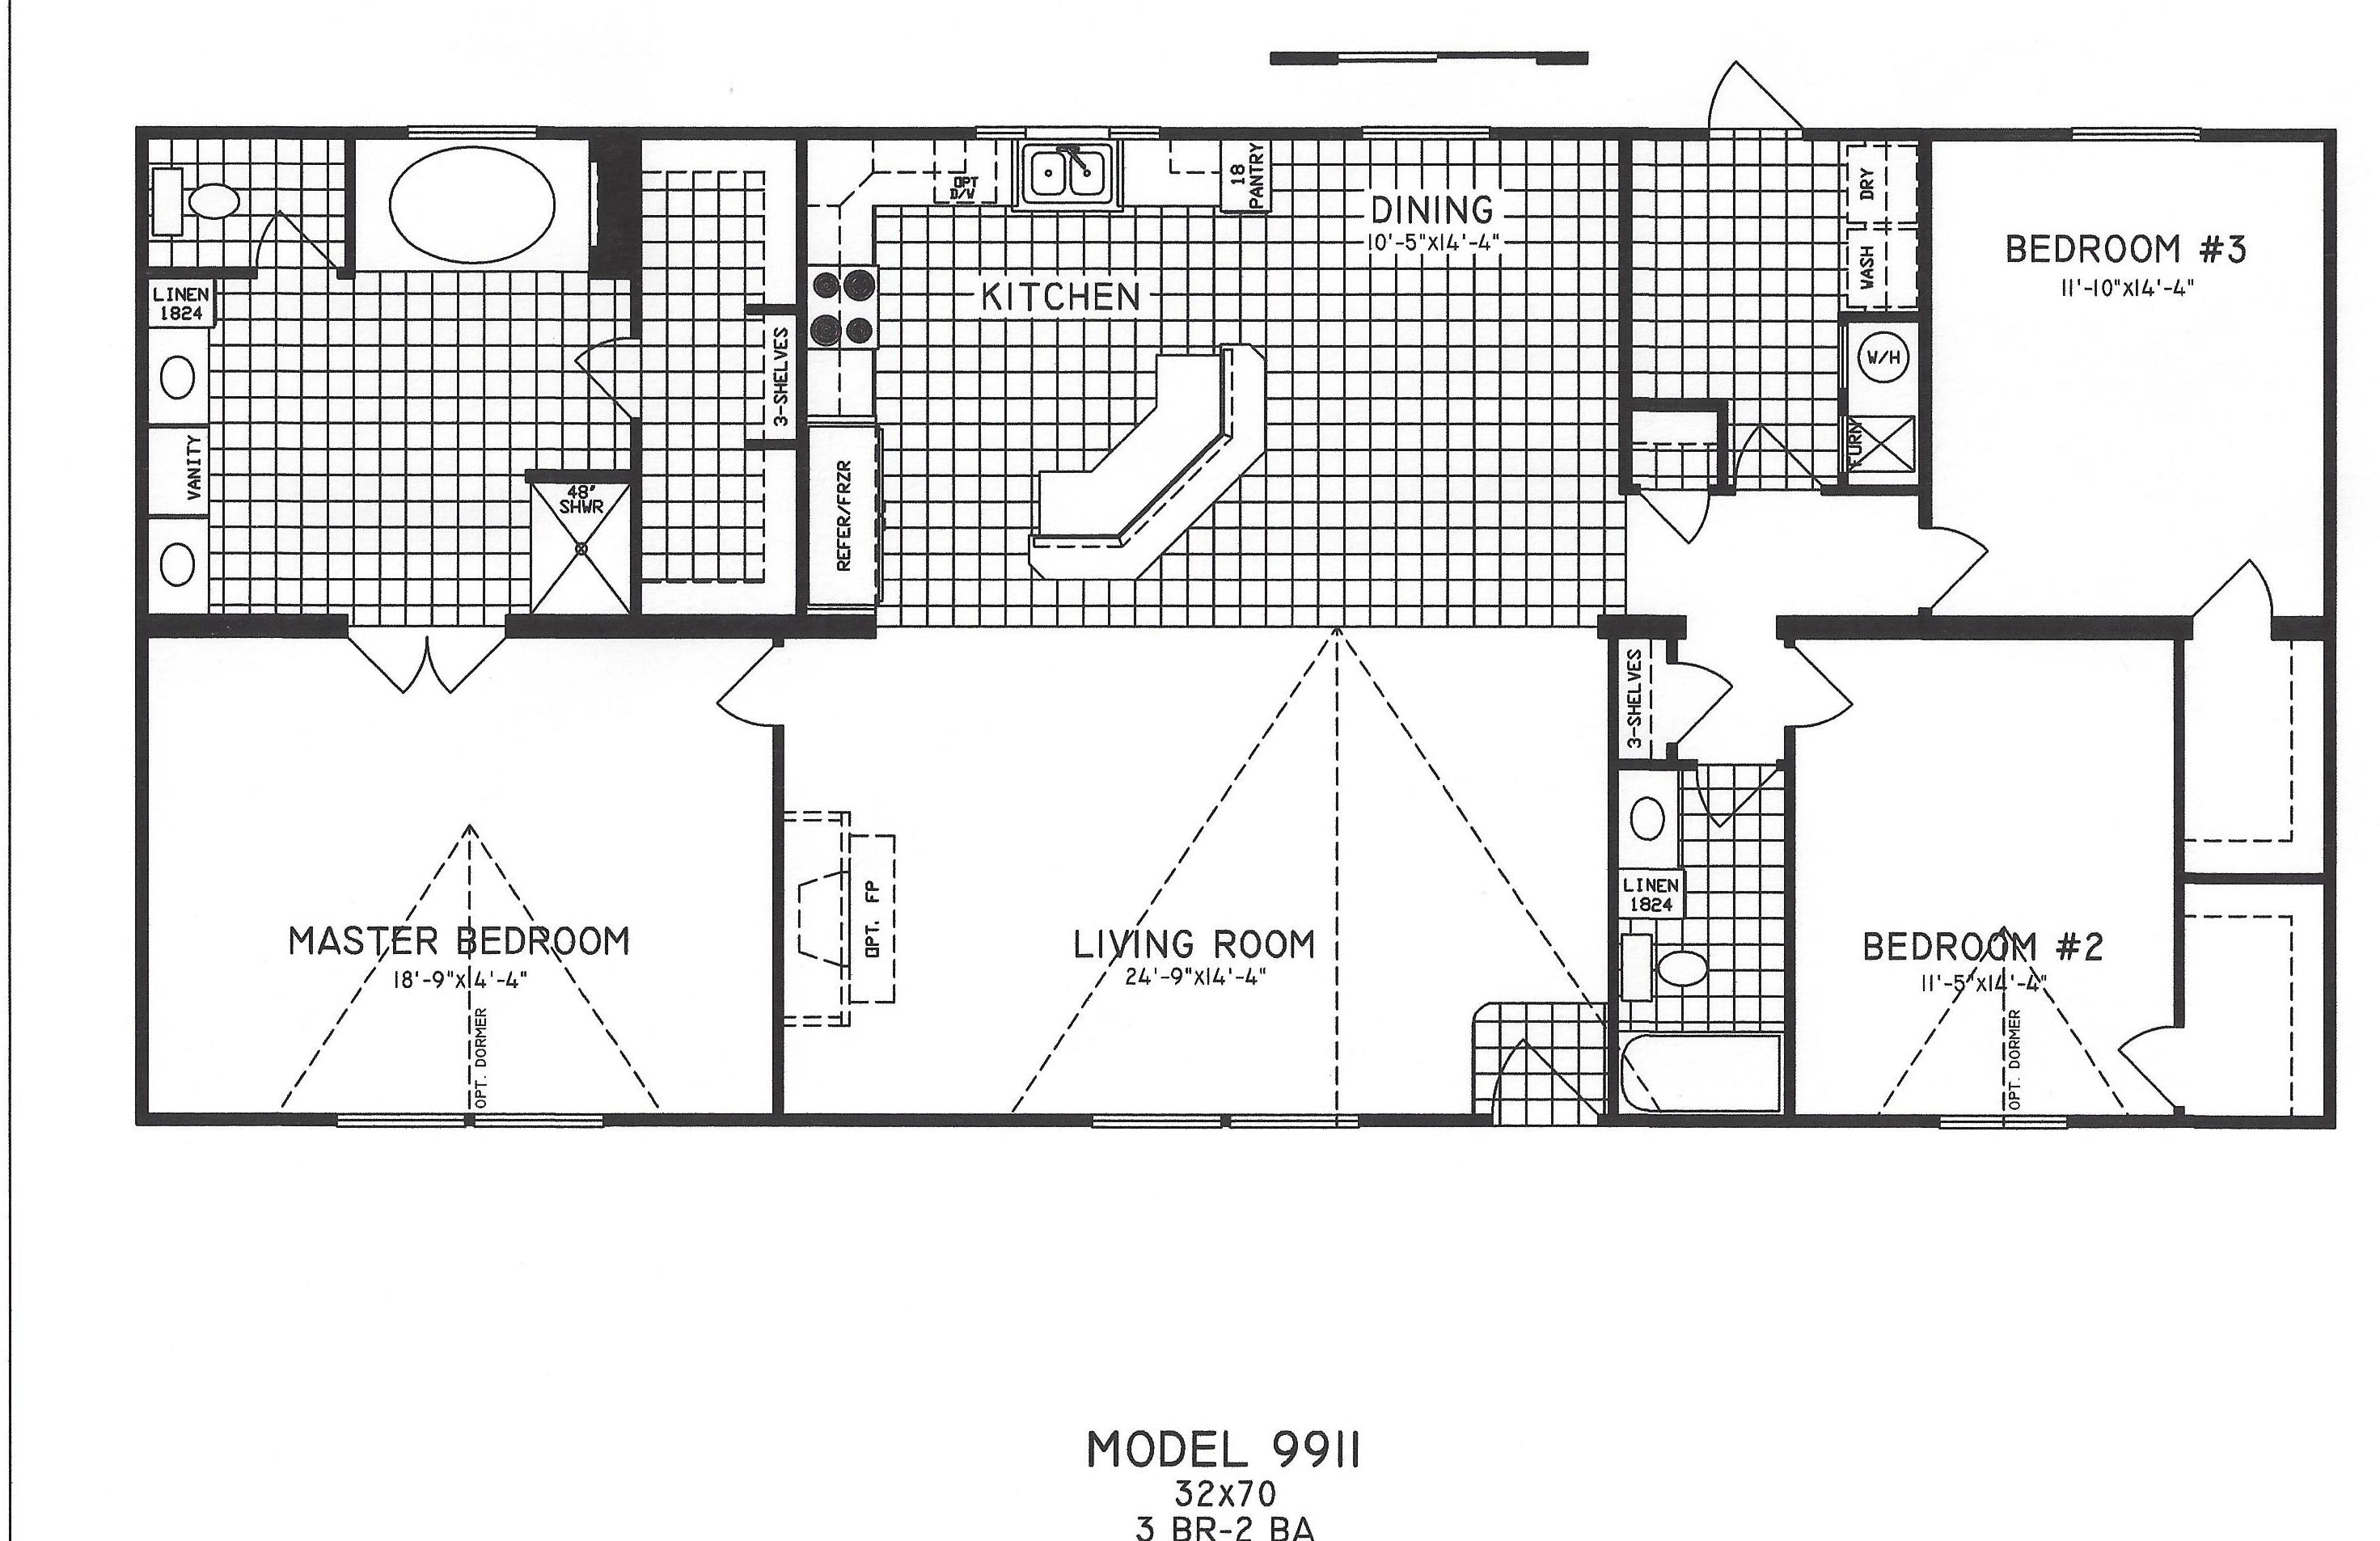 3 Bedroom Floor Plan C 9911 Hawks Homes Manufactured